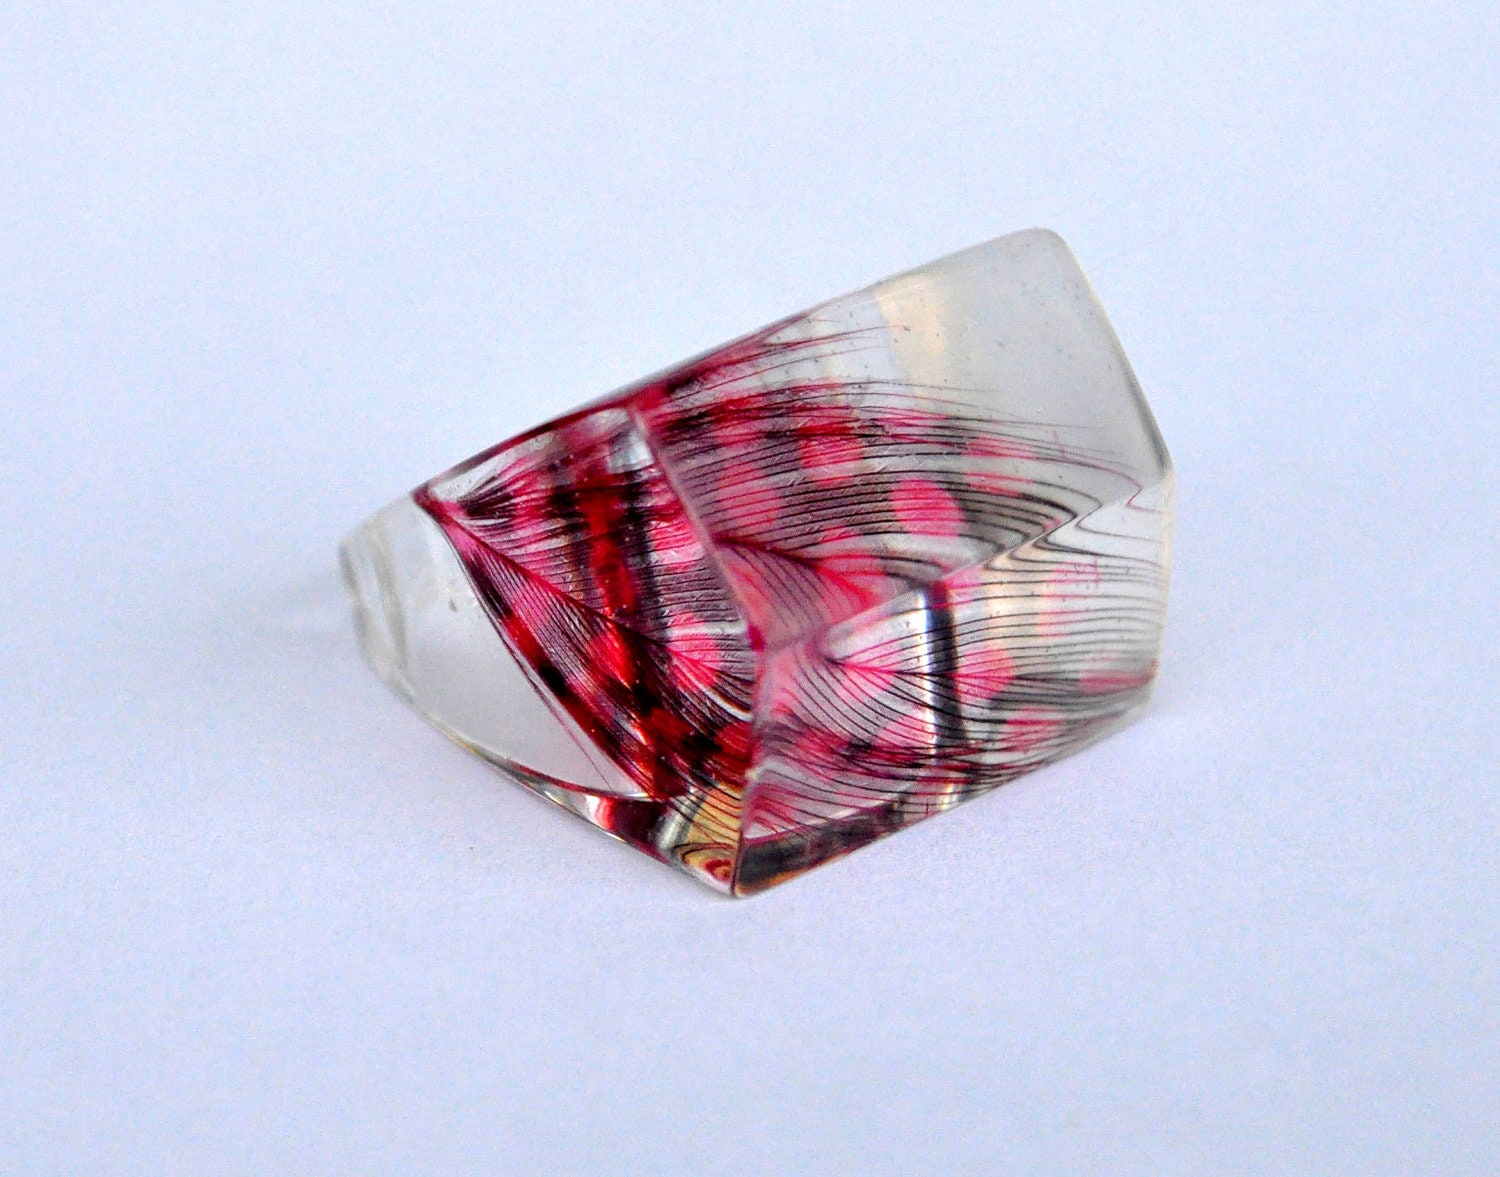 Feather Resin Ring. Resin Jewelry. Limited Edition. Red. Size 16 mm 6 USA. Statement Ring.